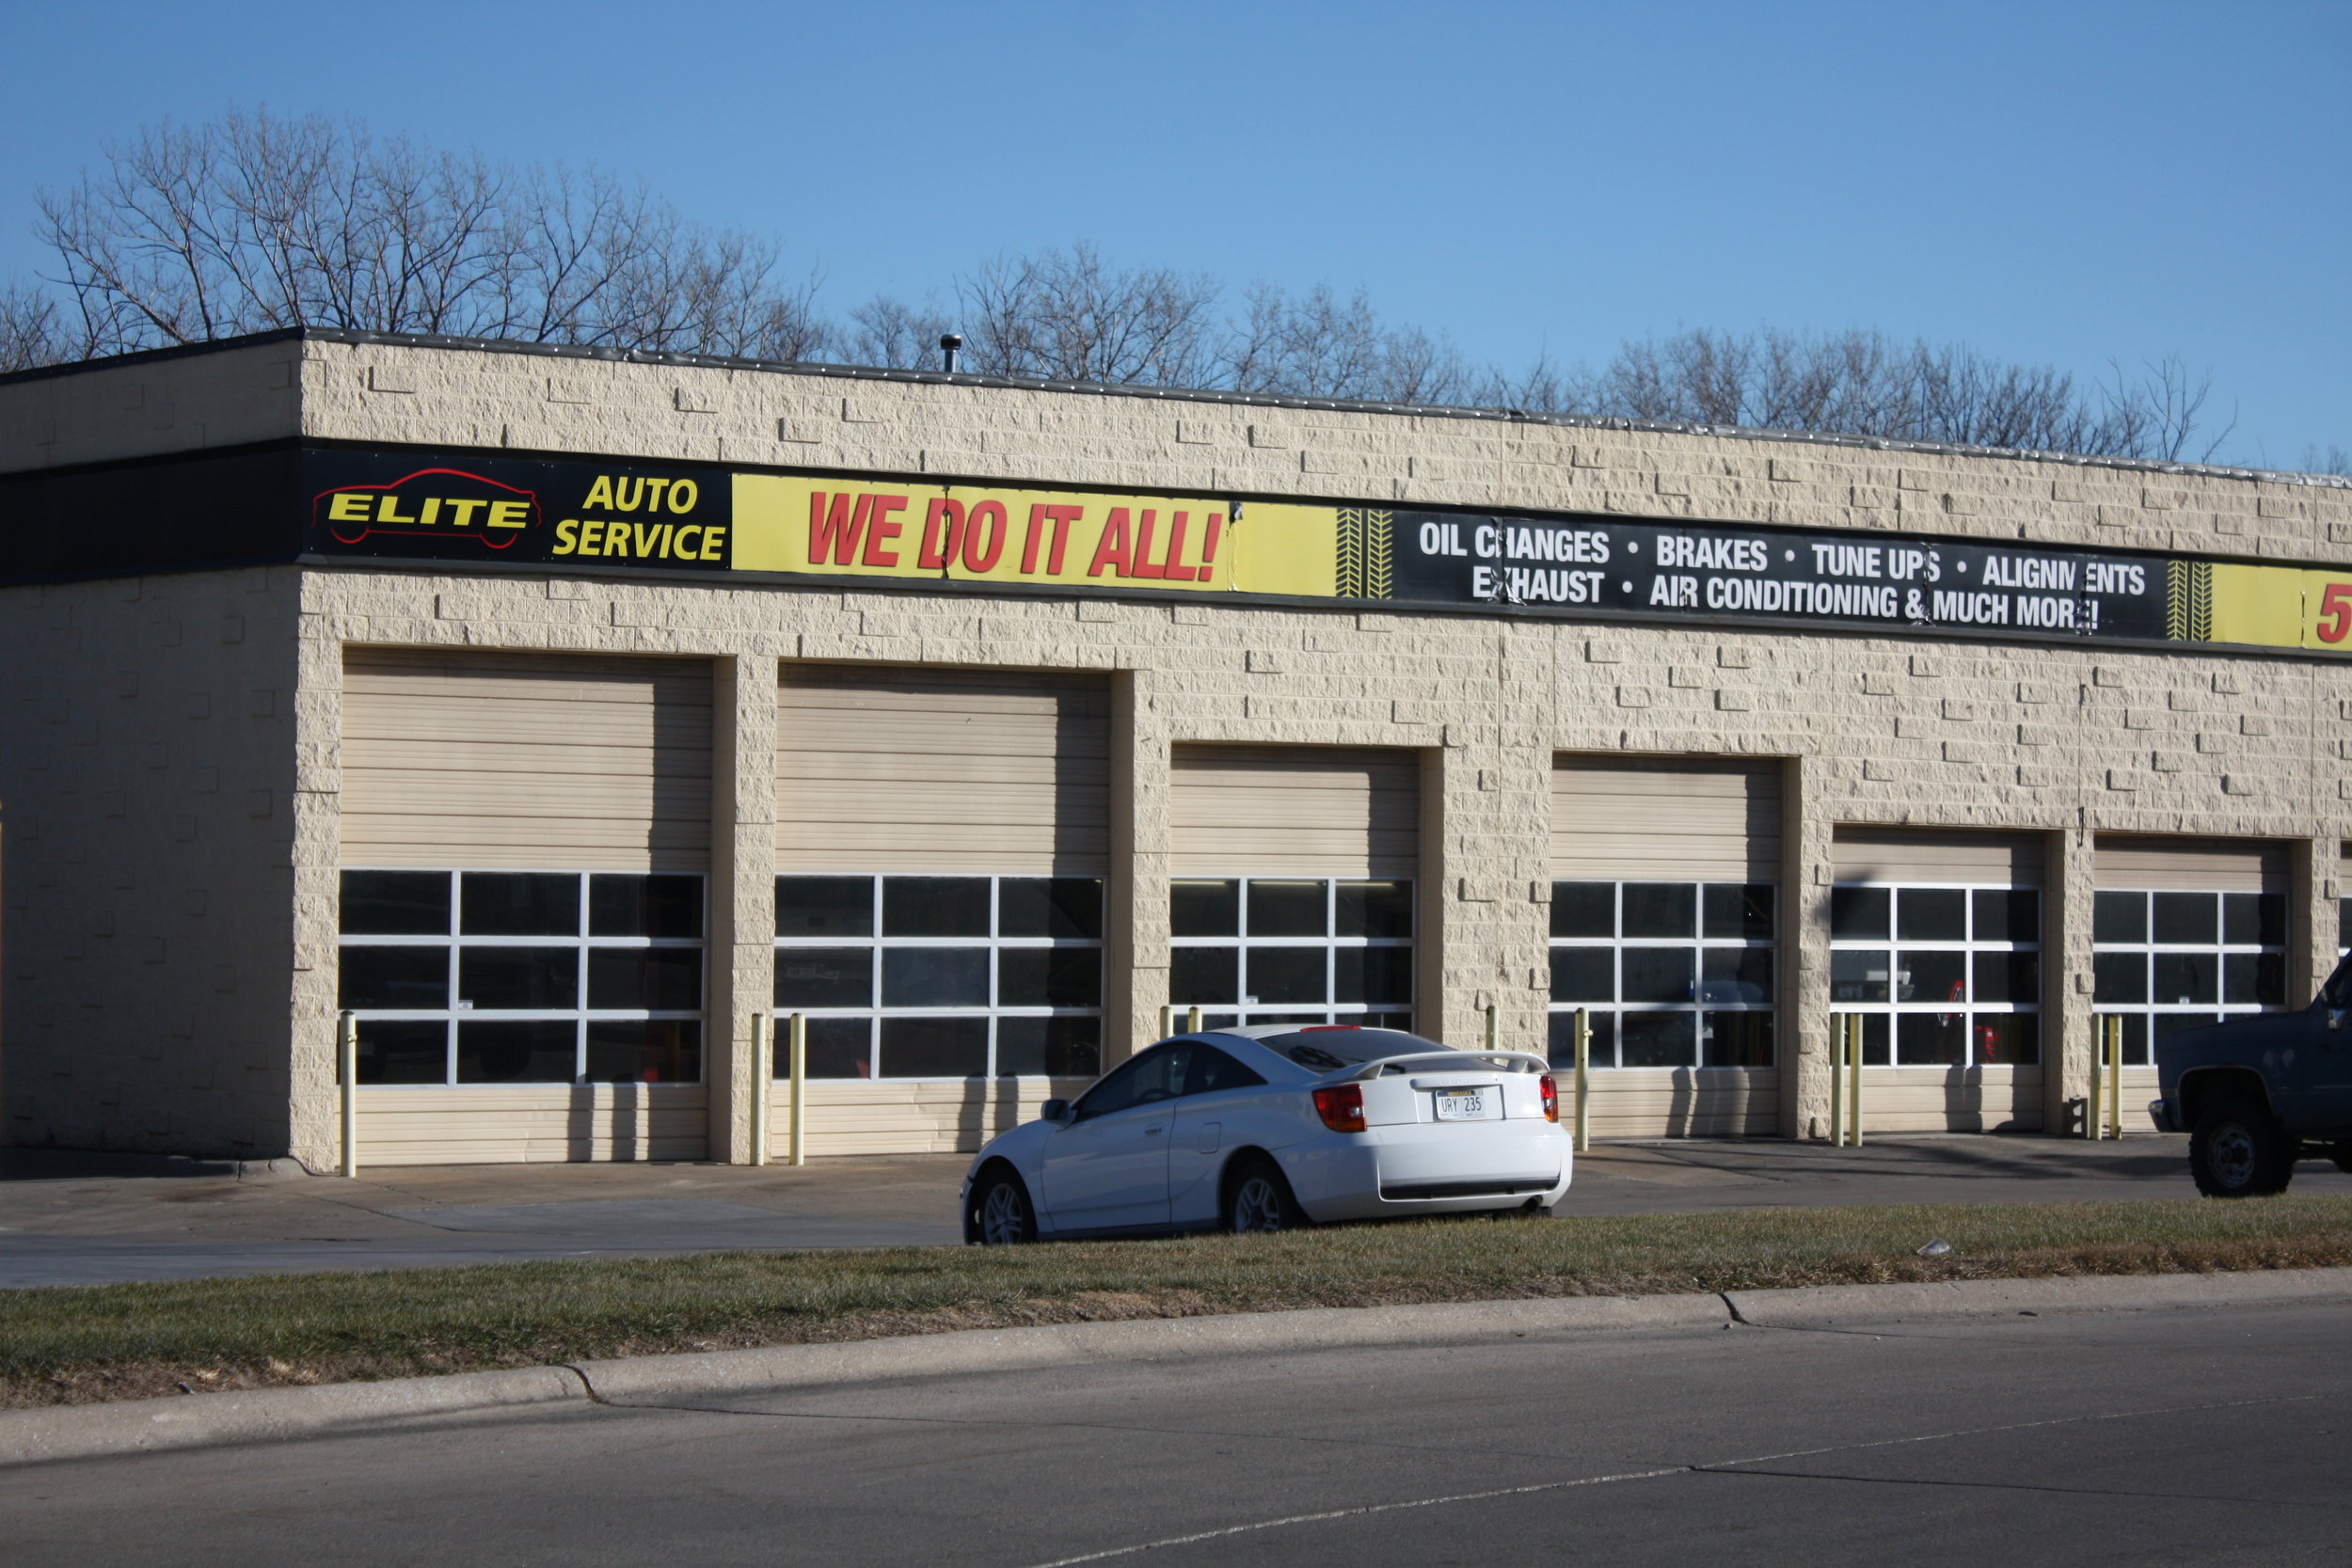 ELITE AUTO SERVICE OMAHA at 90th & Fort